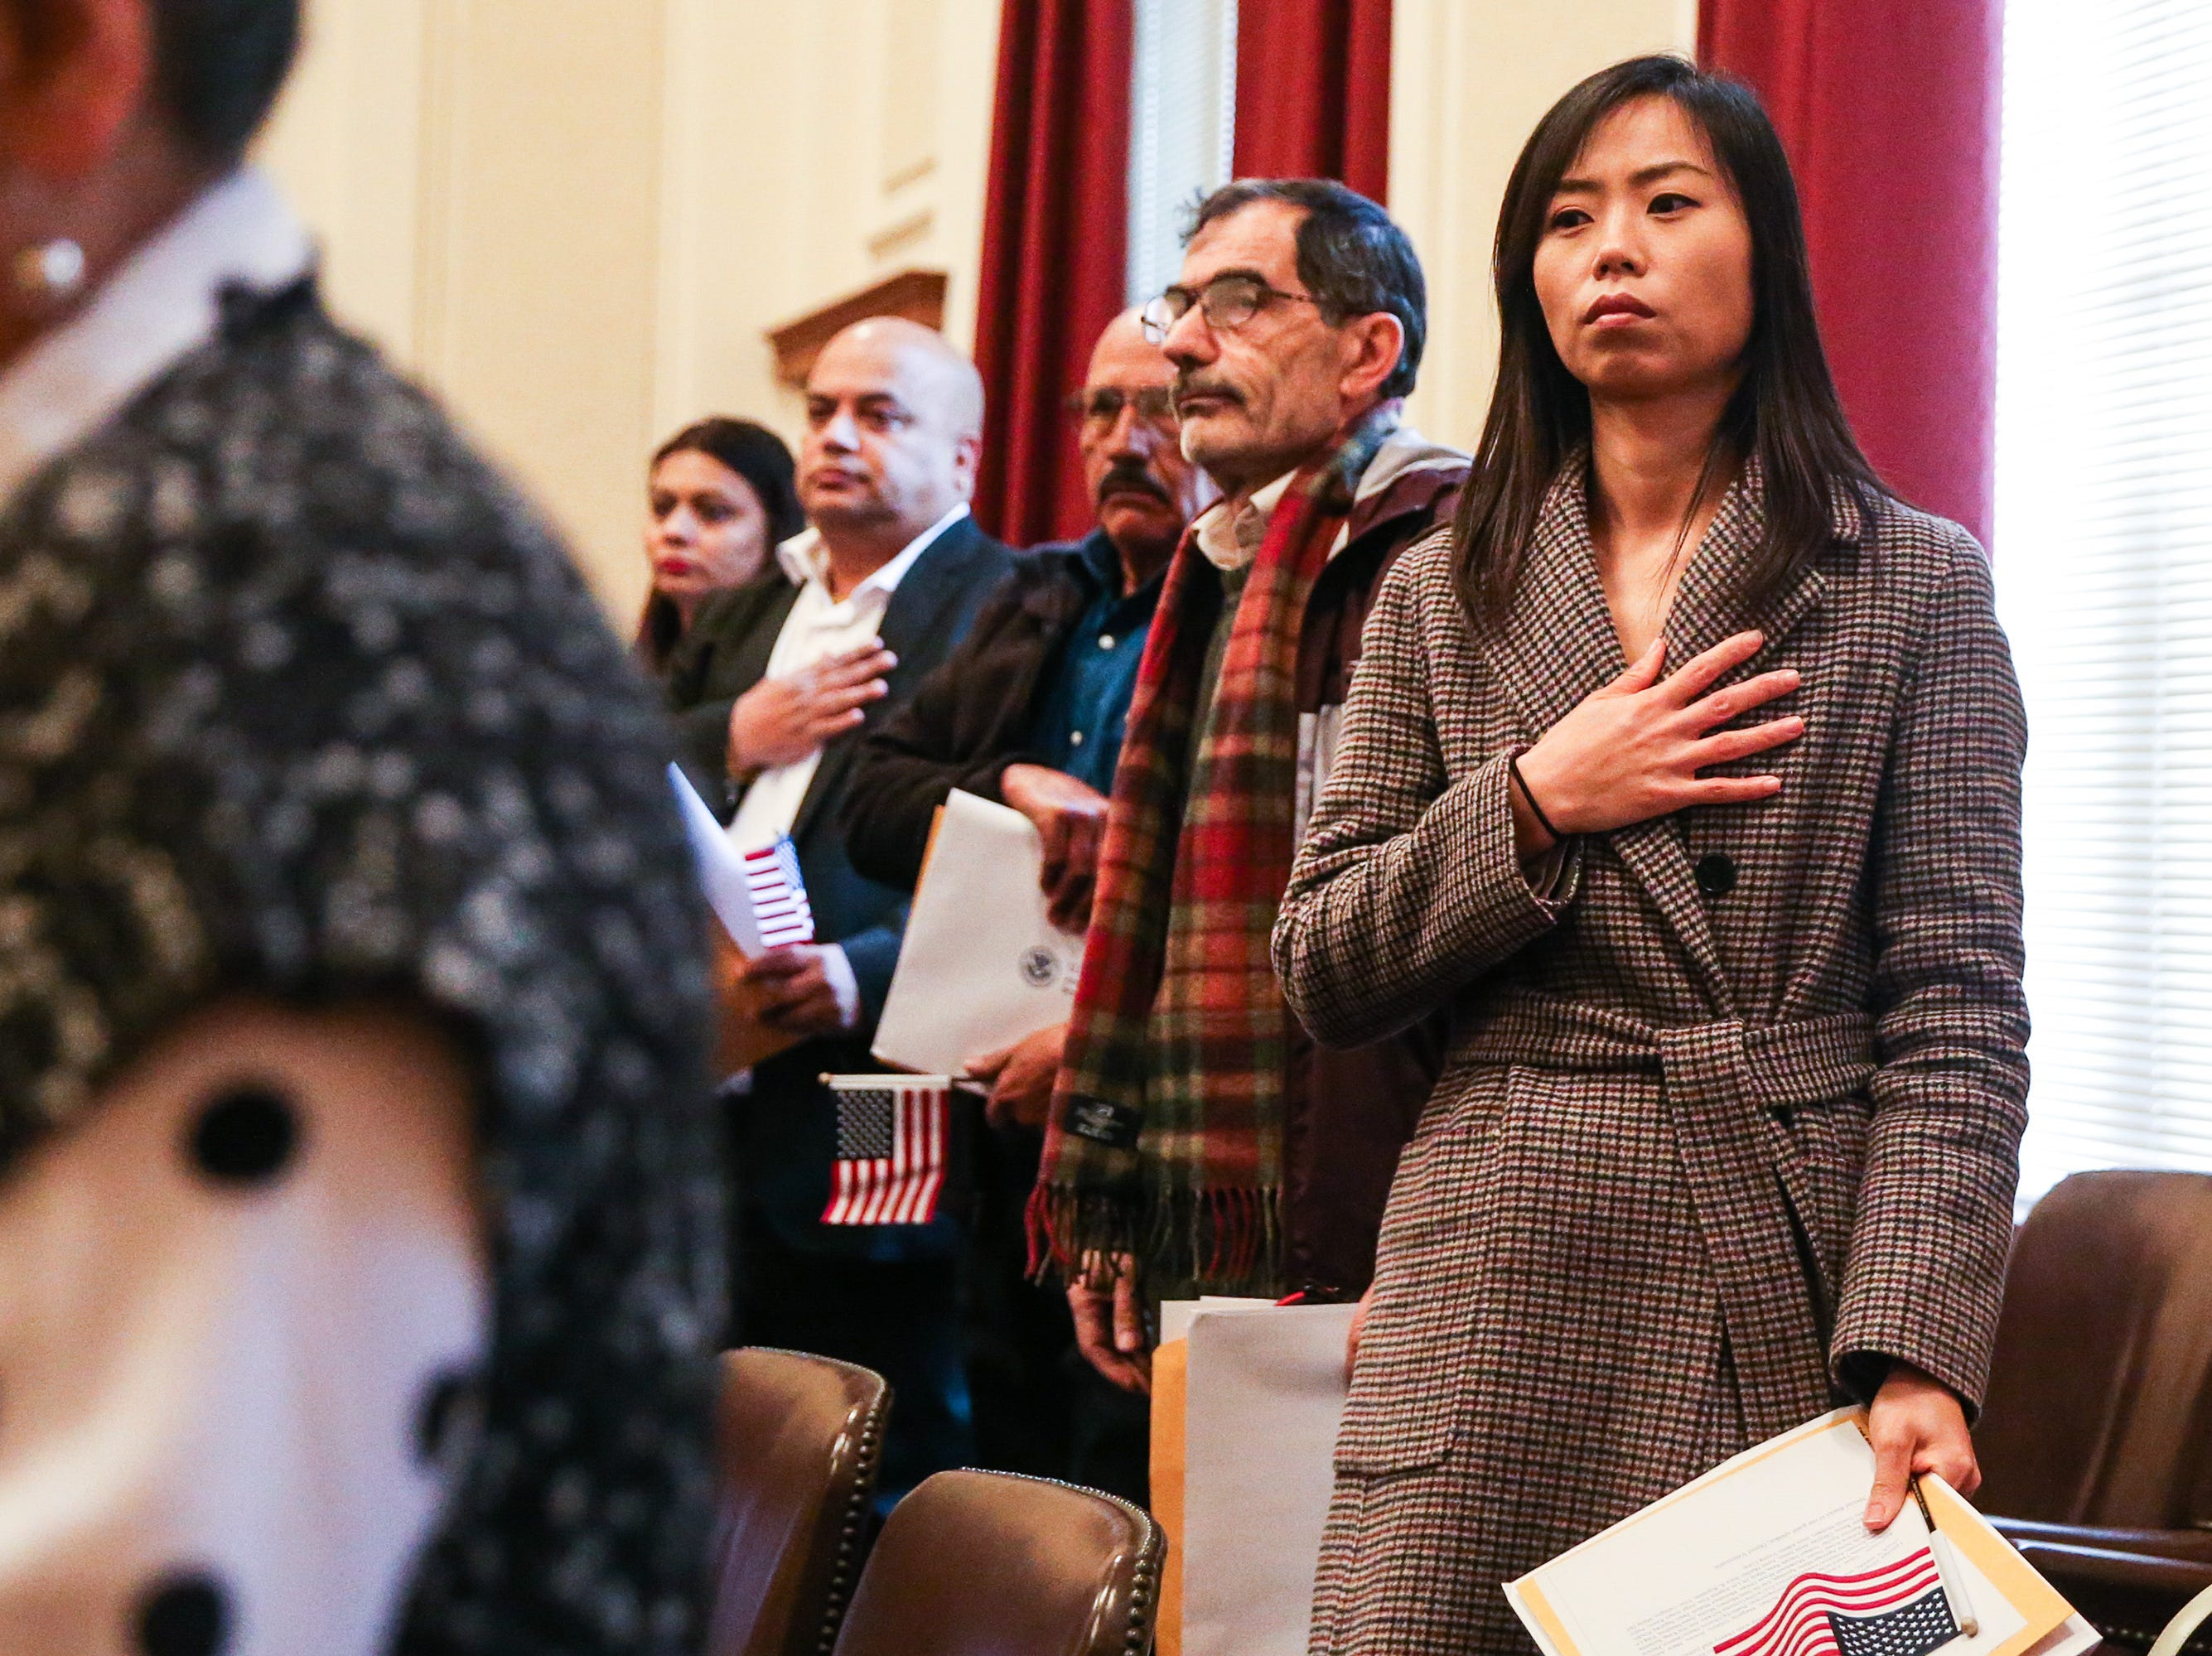 Eun Hye Kang and other applicants pledge allegiance during the naturalization ceremony Wednesday, Jan. 8, 2019, at the O.C. Fisher Federal Building.